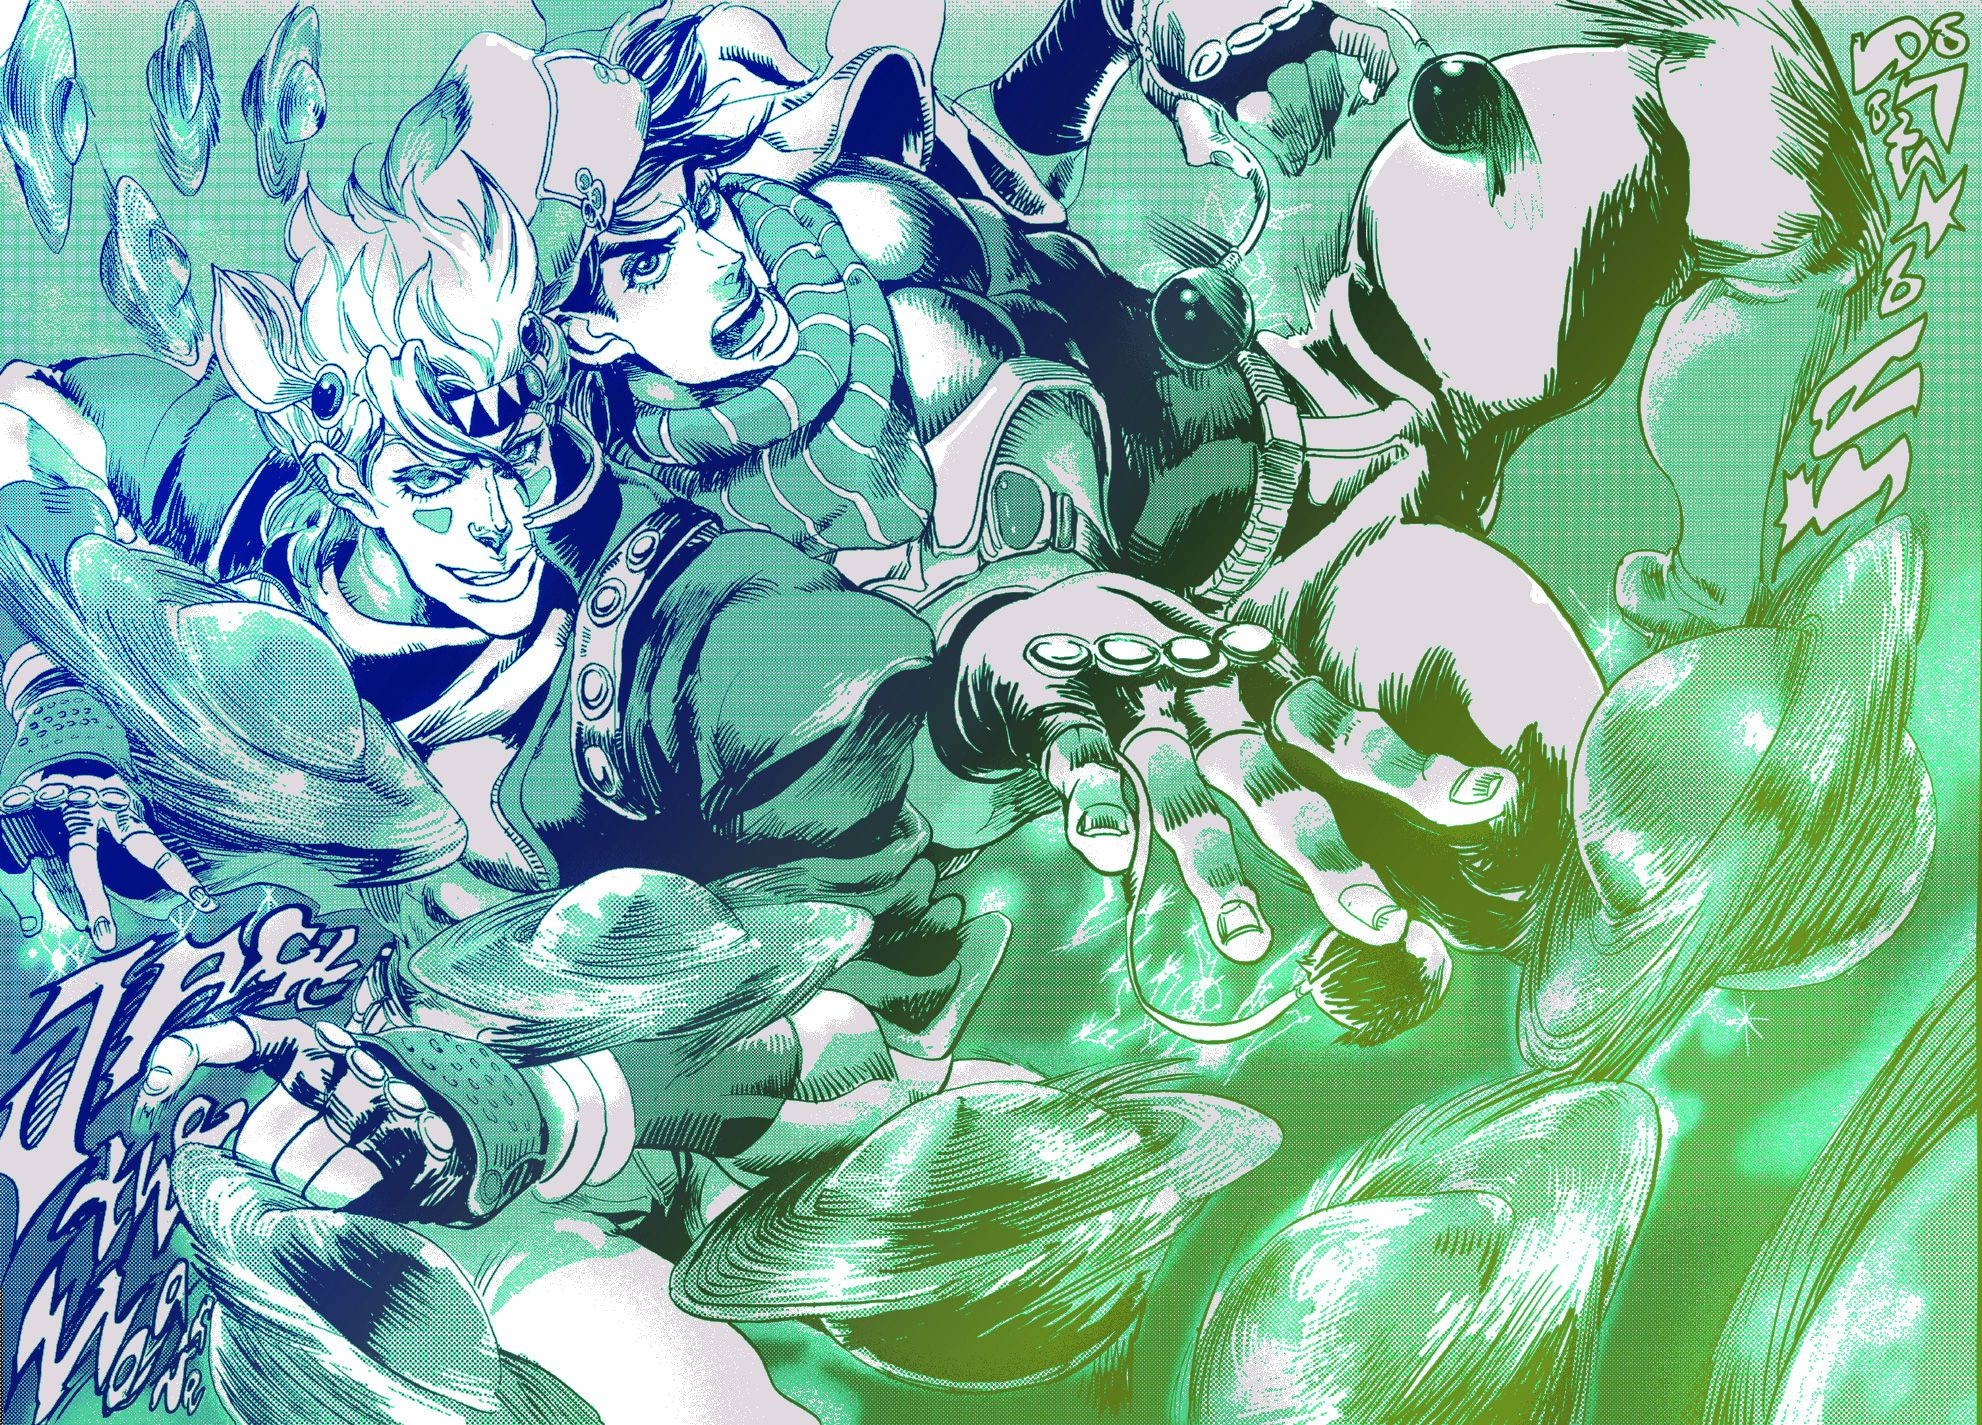 Jojos Bizarre Adventure Wallpaper Anime Wallpaper Iphone Jojo S